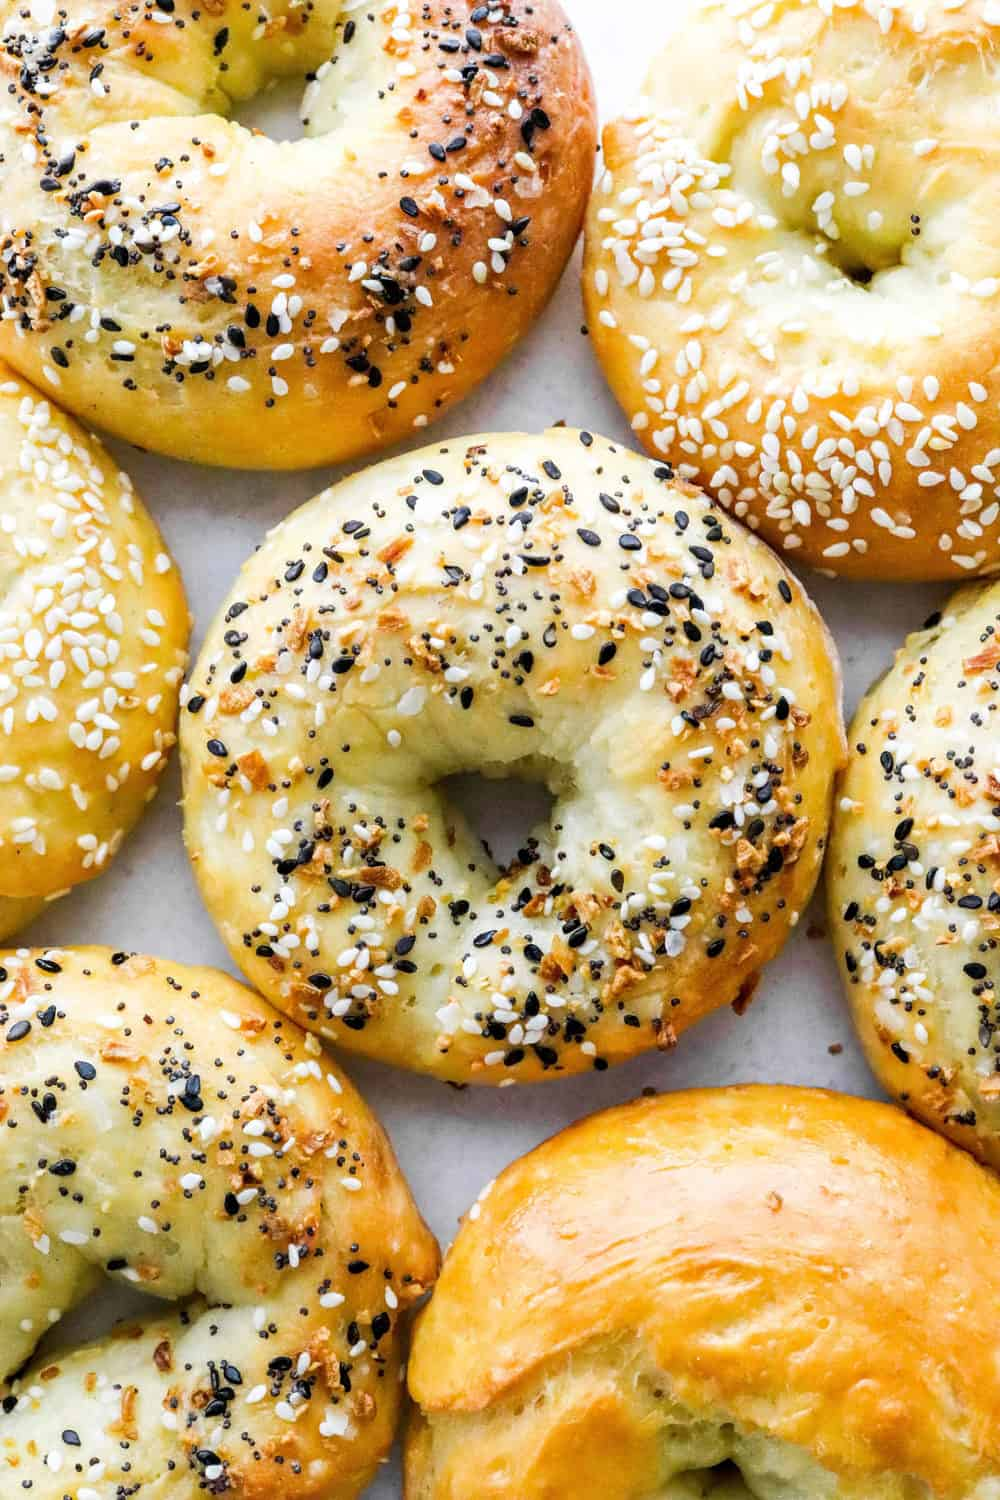 Homemade bagels with everything seasoning on them spread out on a white surface